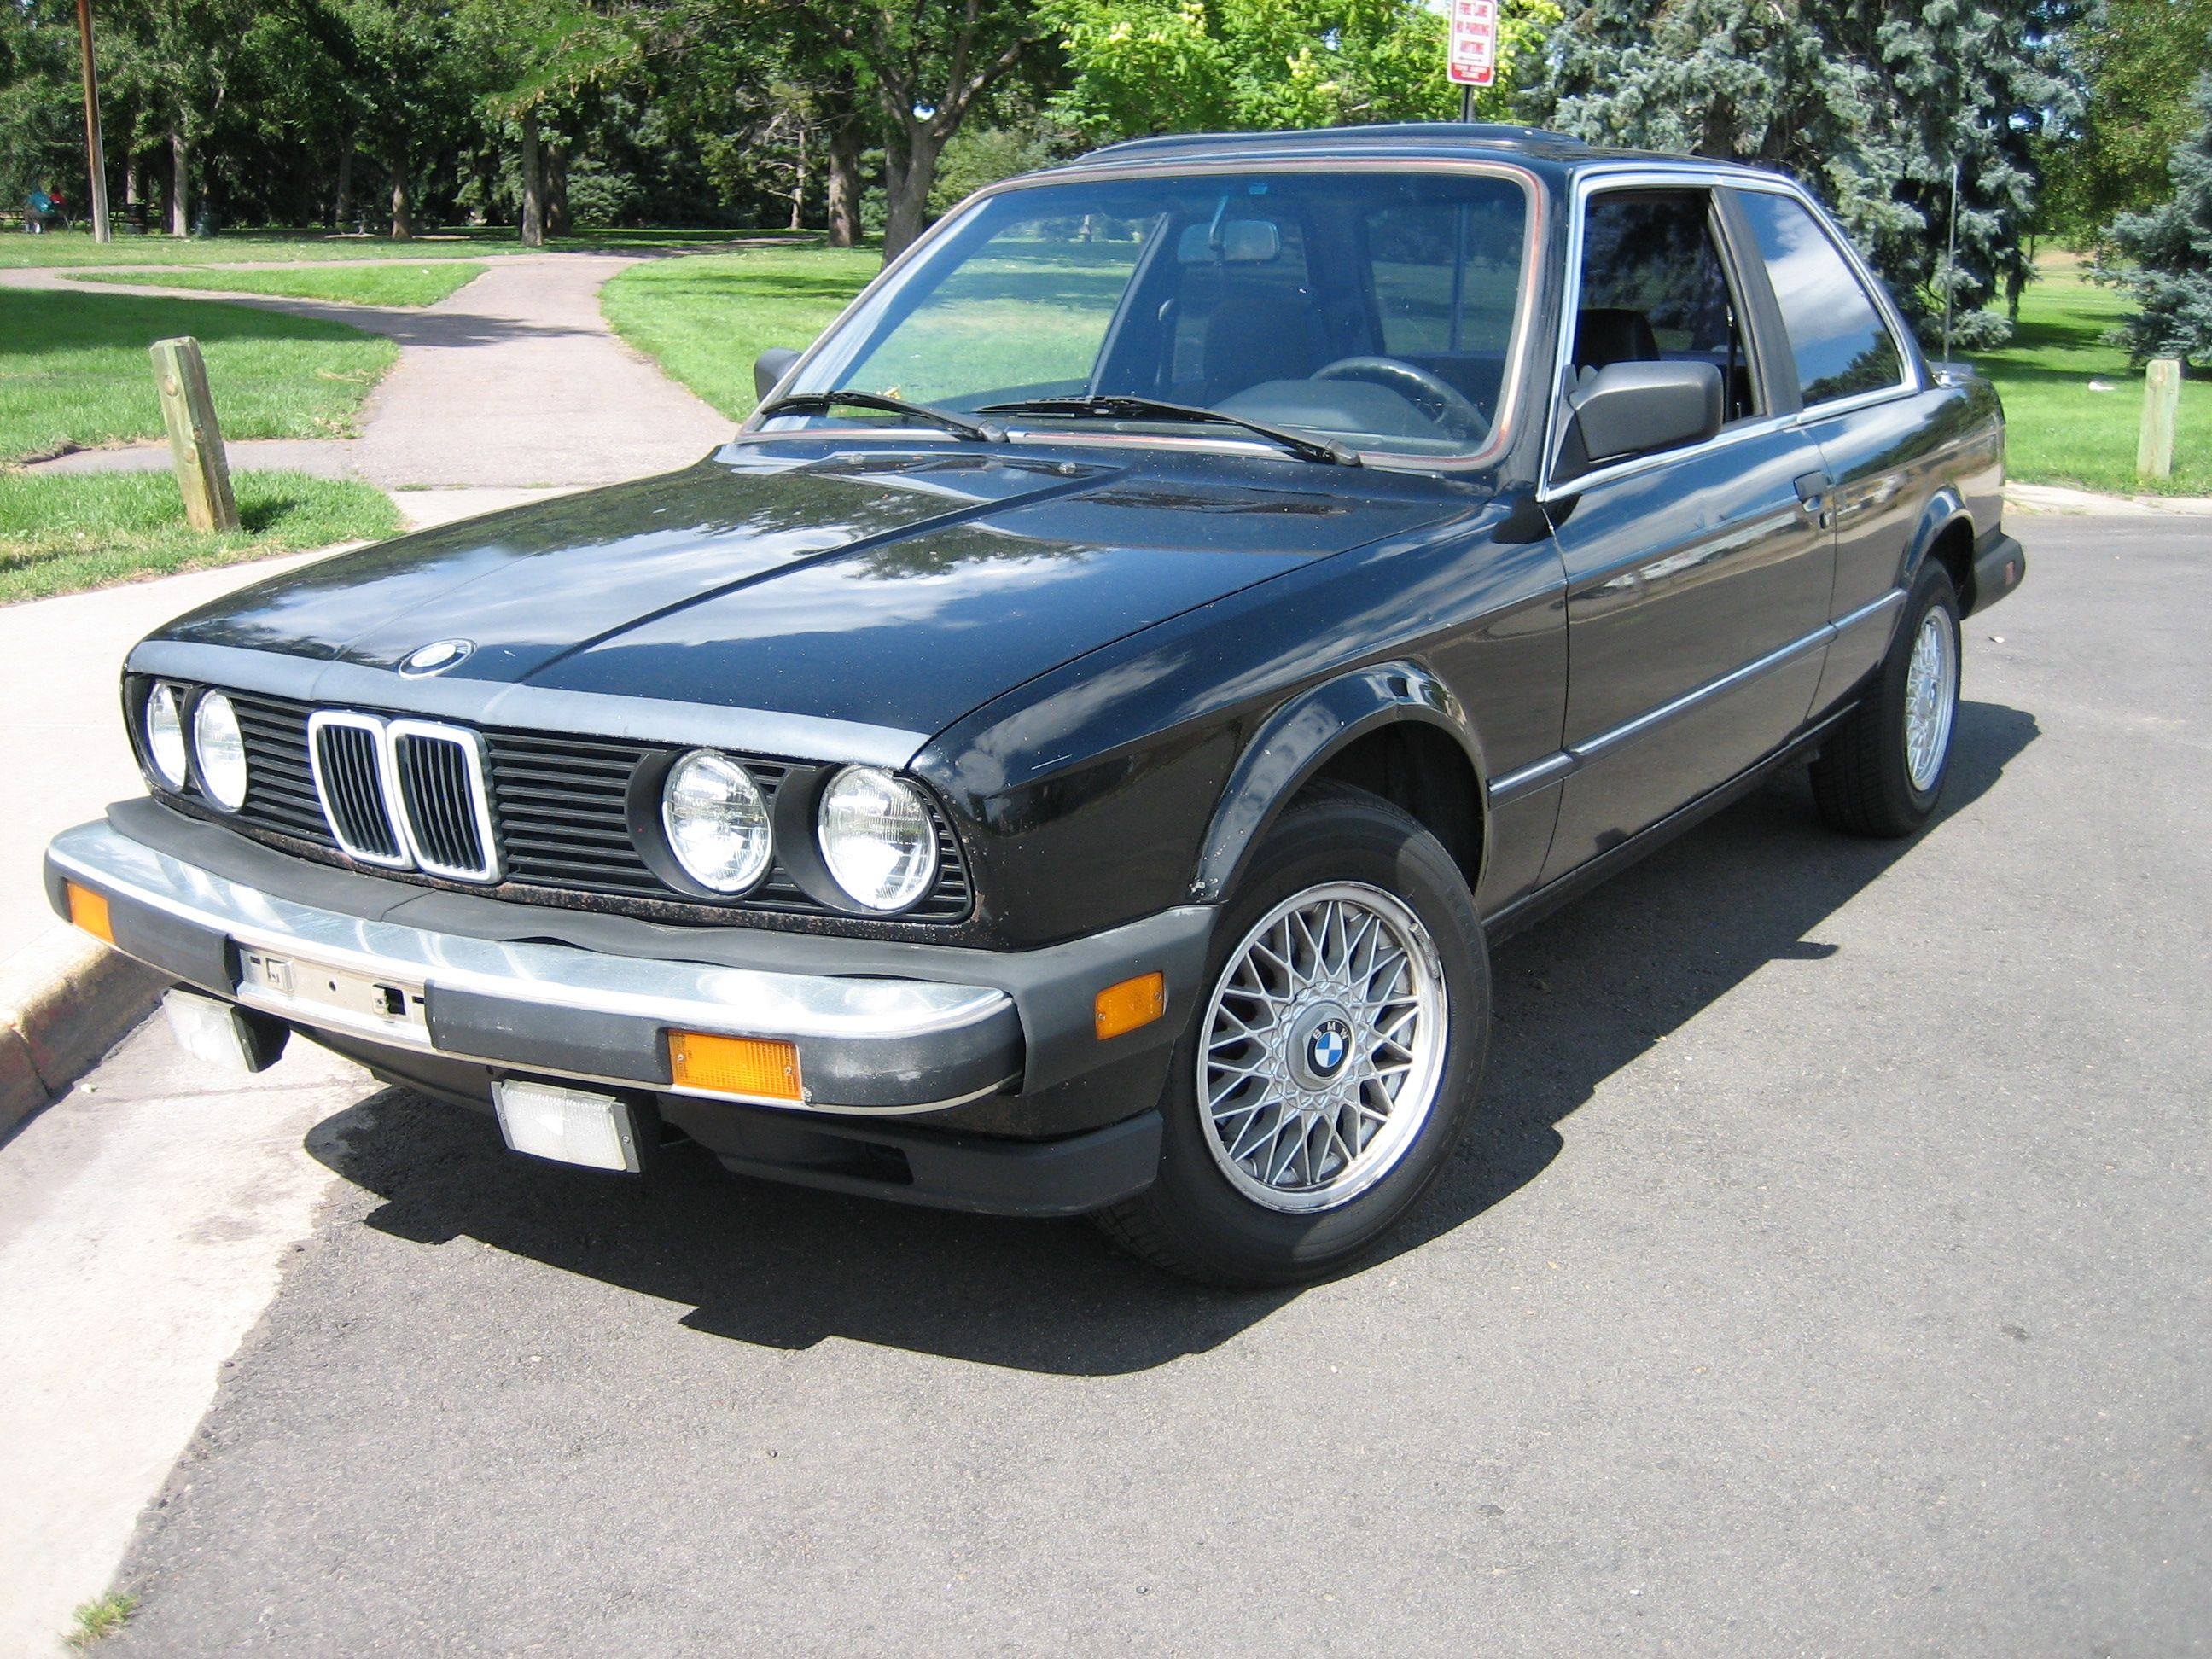 1984 BMW 318i I remember having this car in Burgandy sold